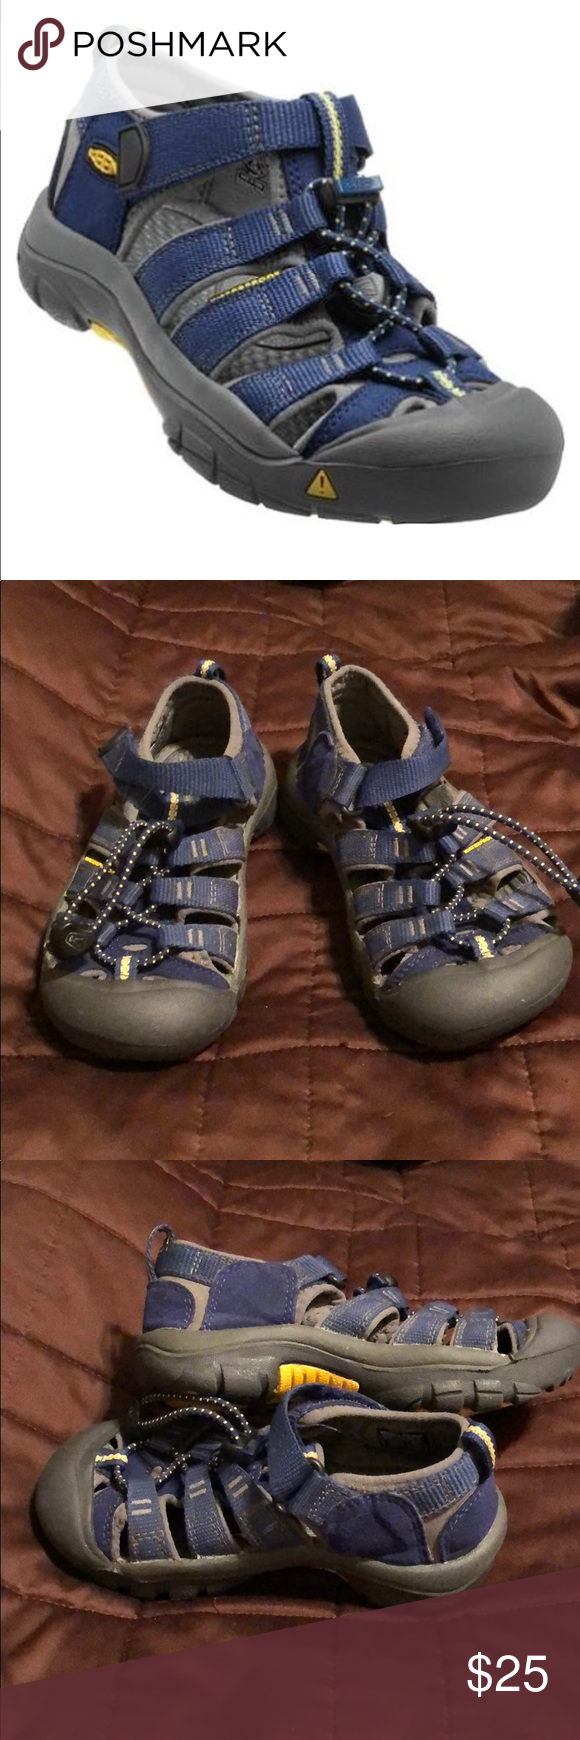 0af908fac3f2 Kids Keen s size 11us KEEN Newport H2 Sandals Blue Depths Gargoyle Kids.  Used but in like new condition. No box. This great summer sandal can take  anything ...